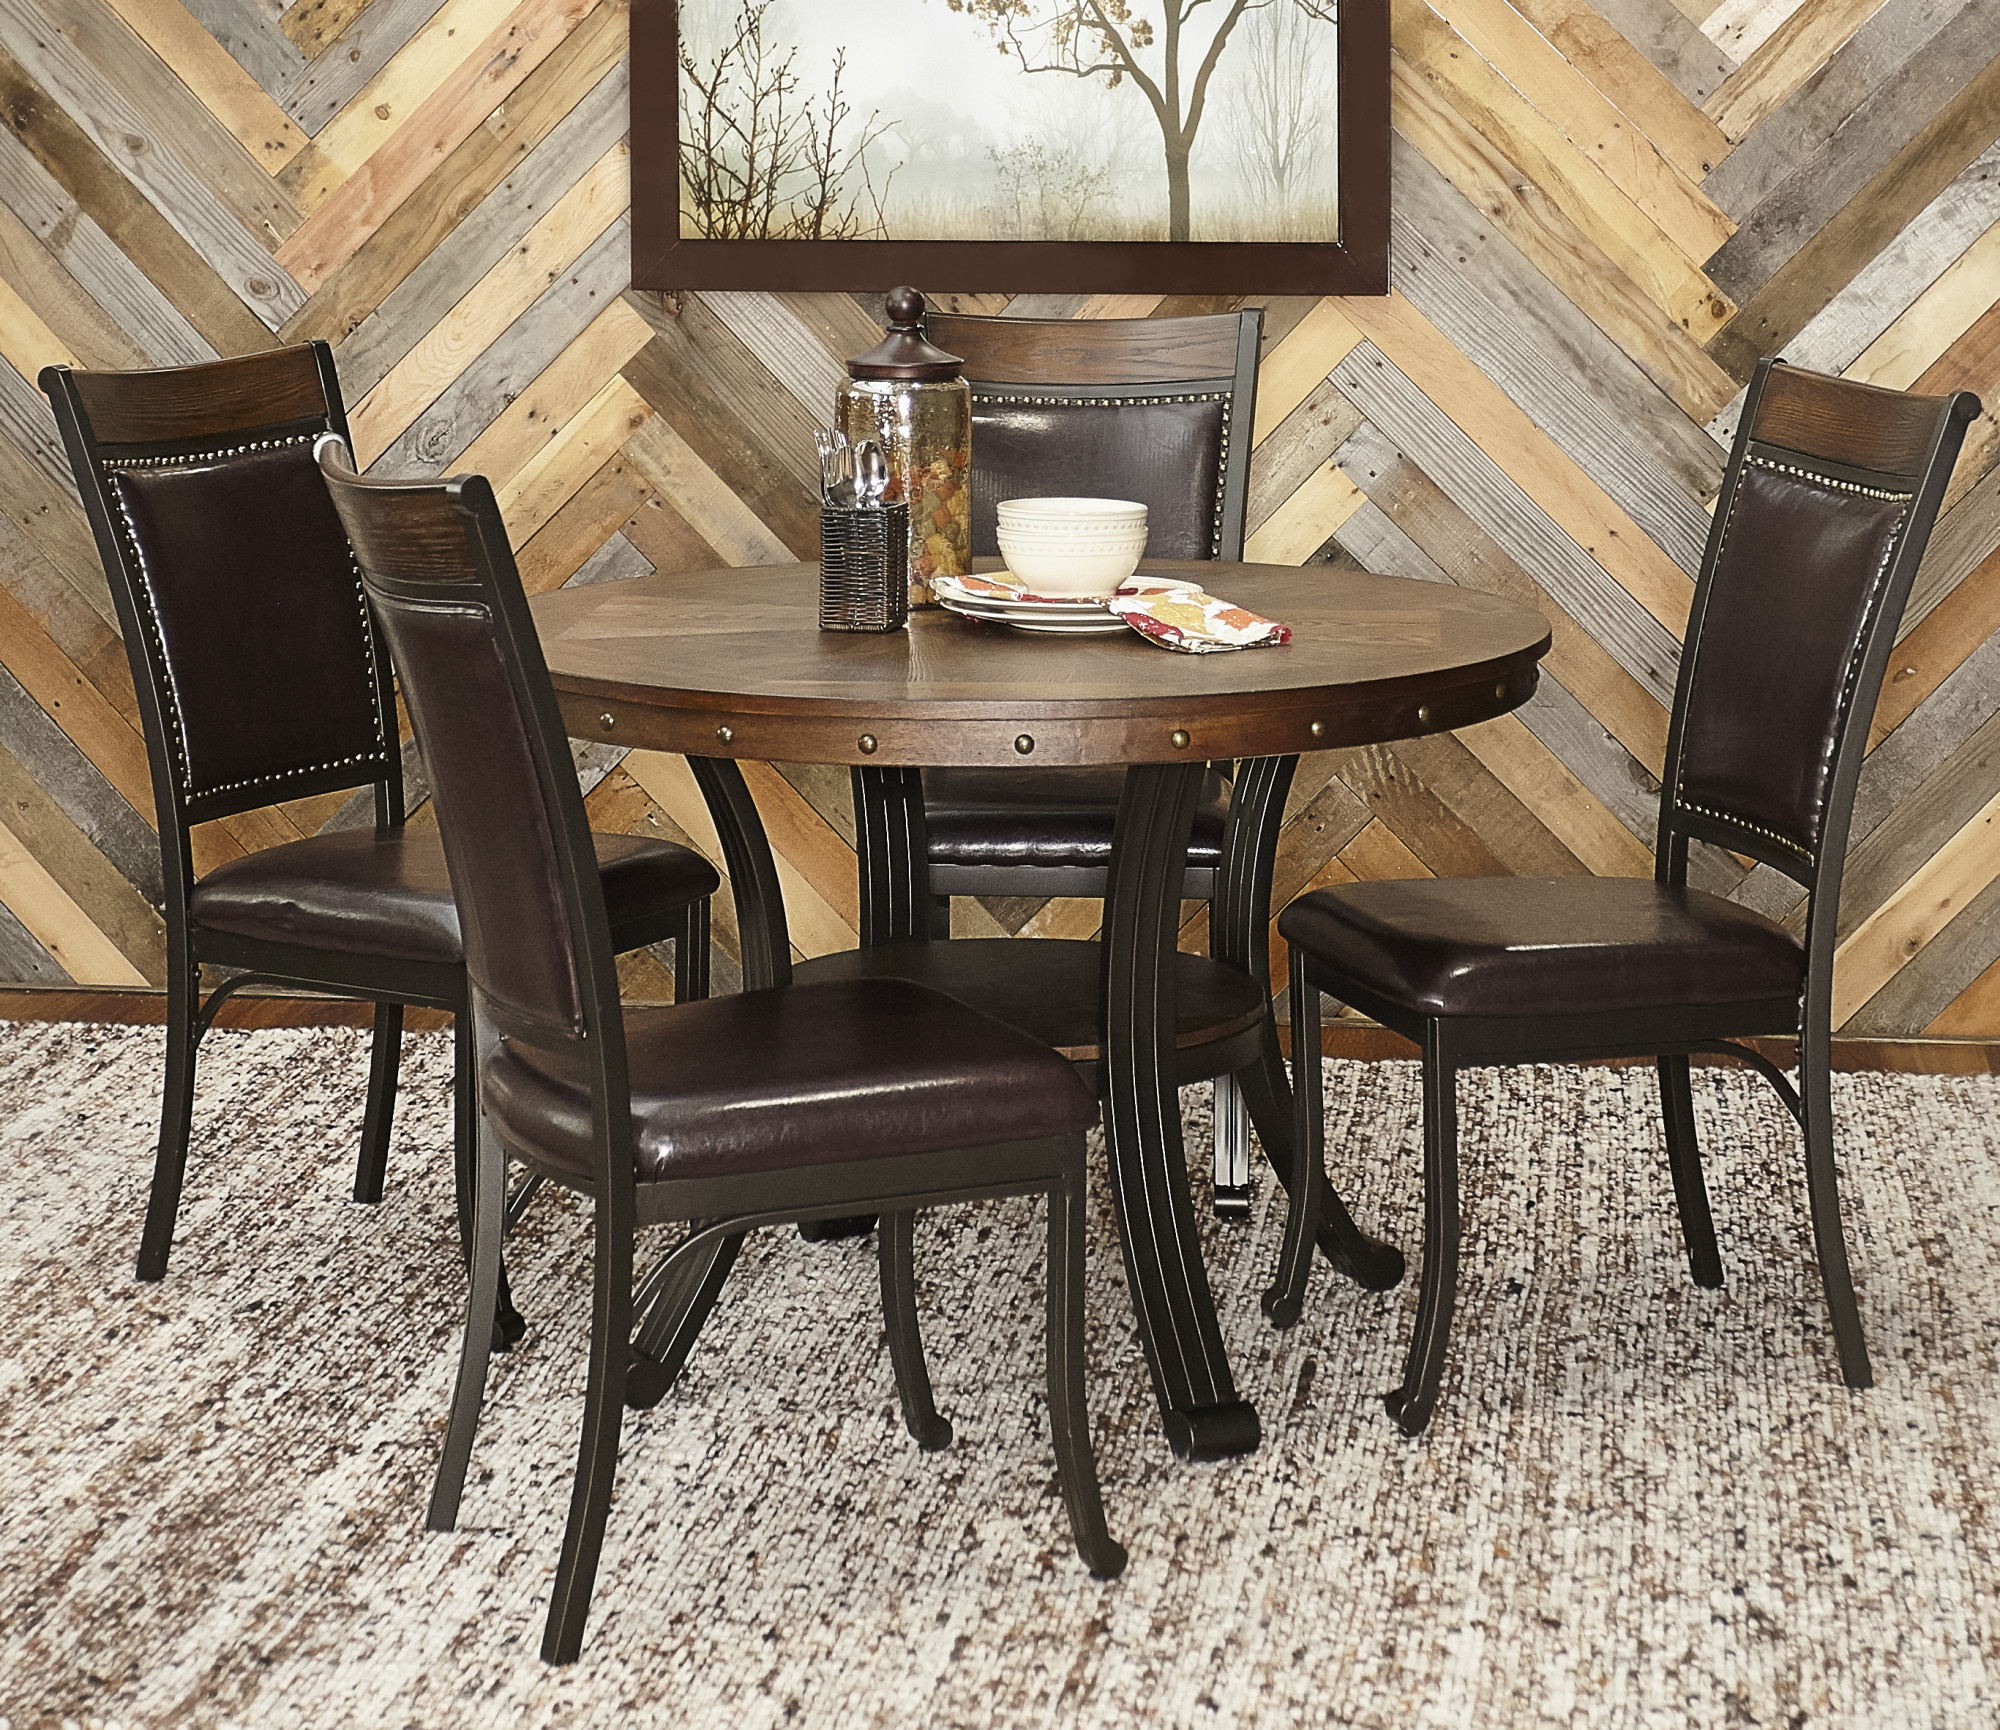 Details about powell home fashions 15d2020 franklin five piece metal framed dining set